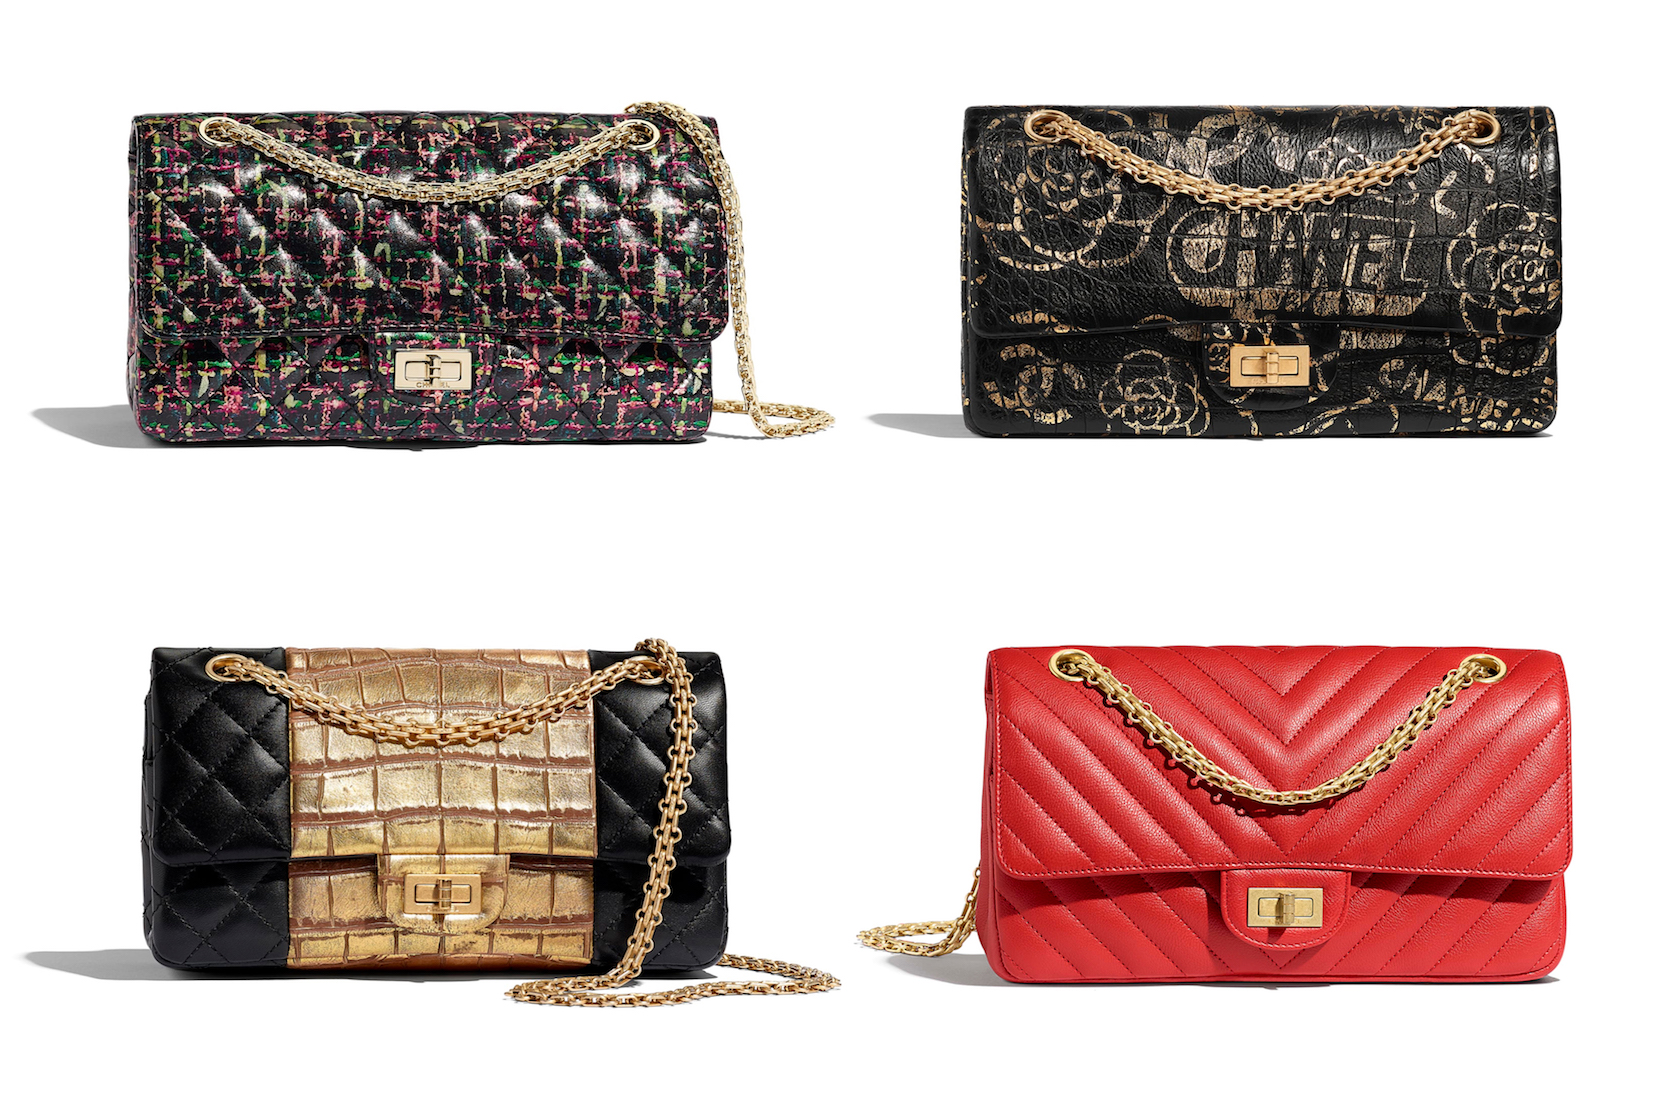 The latest Chanel 2.55 bag styles